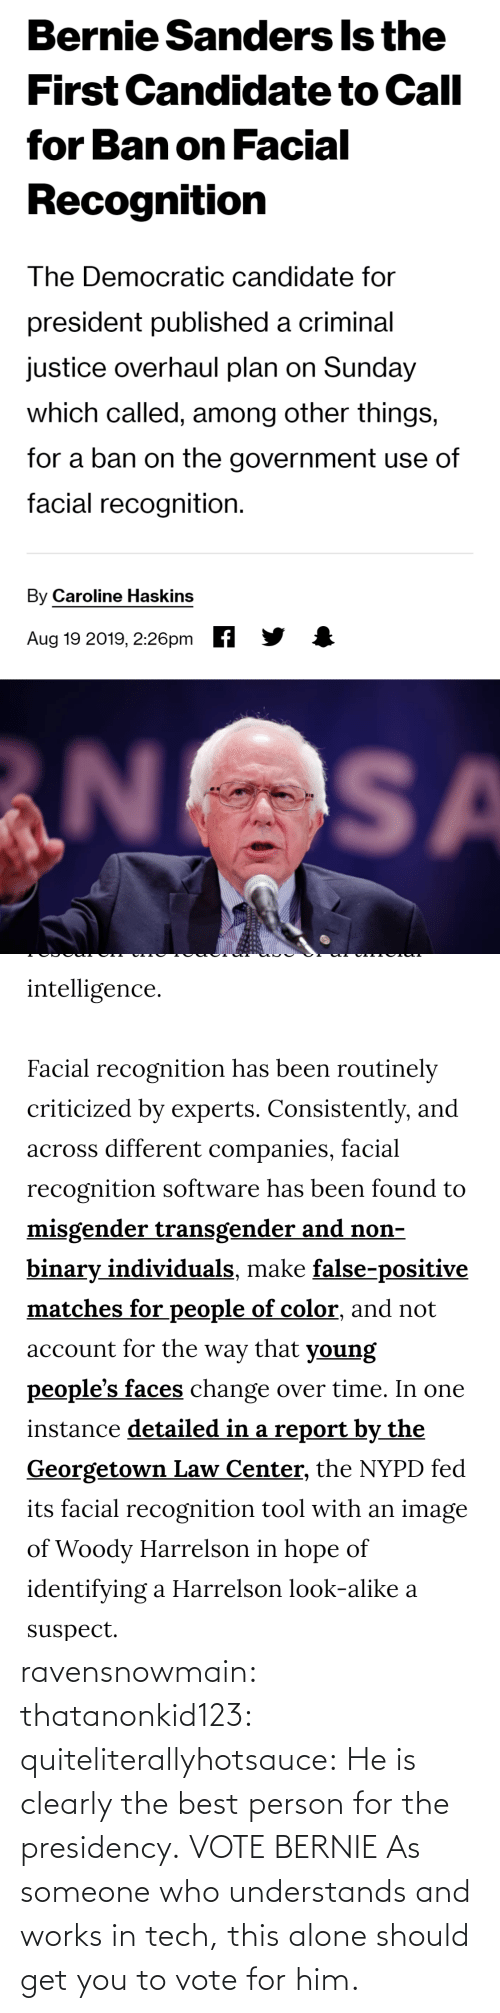 works: ravensnowmain: thatanonkid123:  quiteliterallyhotsauce:   He is clearly the best person for the presidency.     VOTE BERNIE  As someone who understands and works in tech, this alone should get you to vote for him.